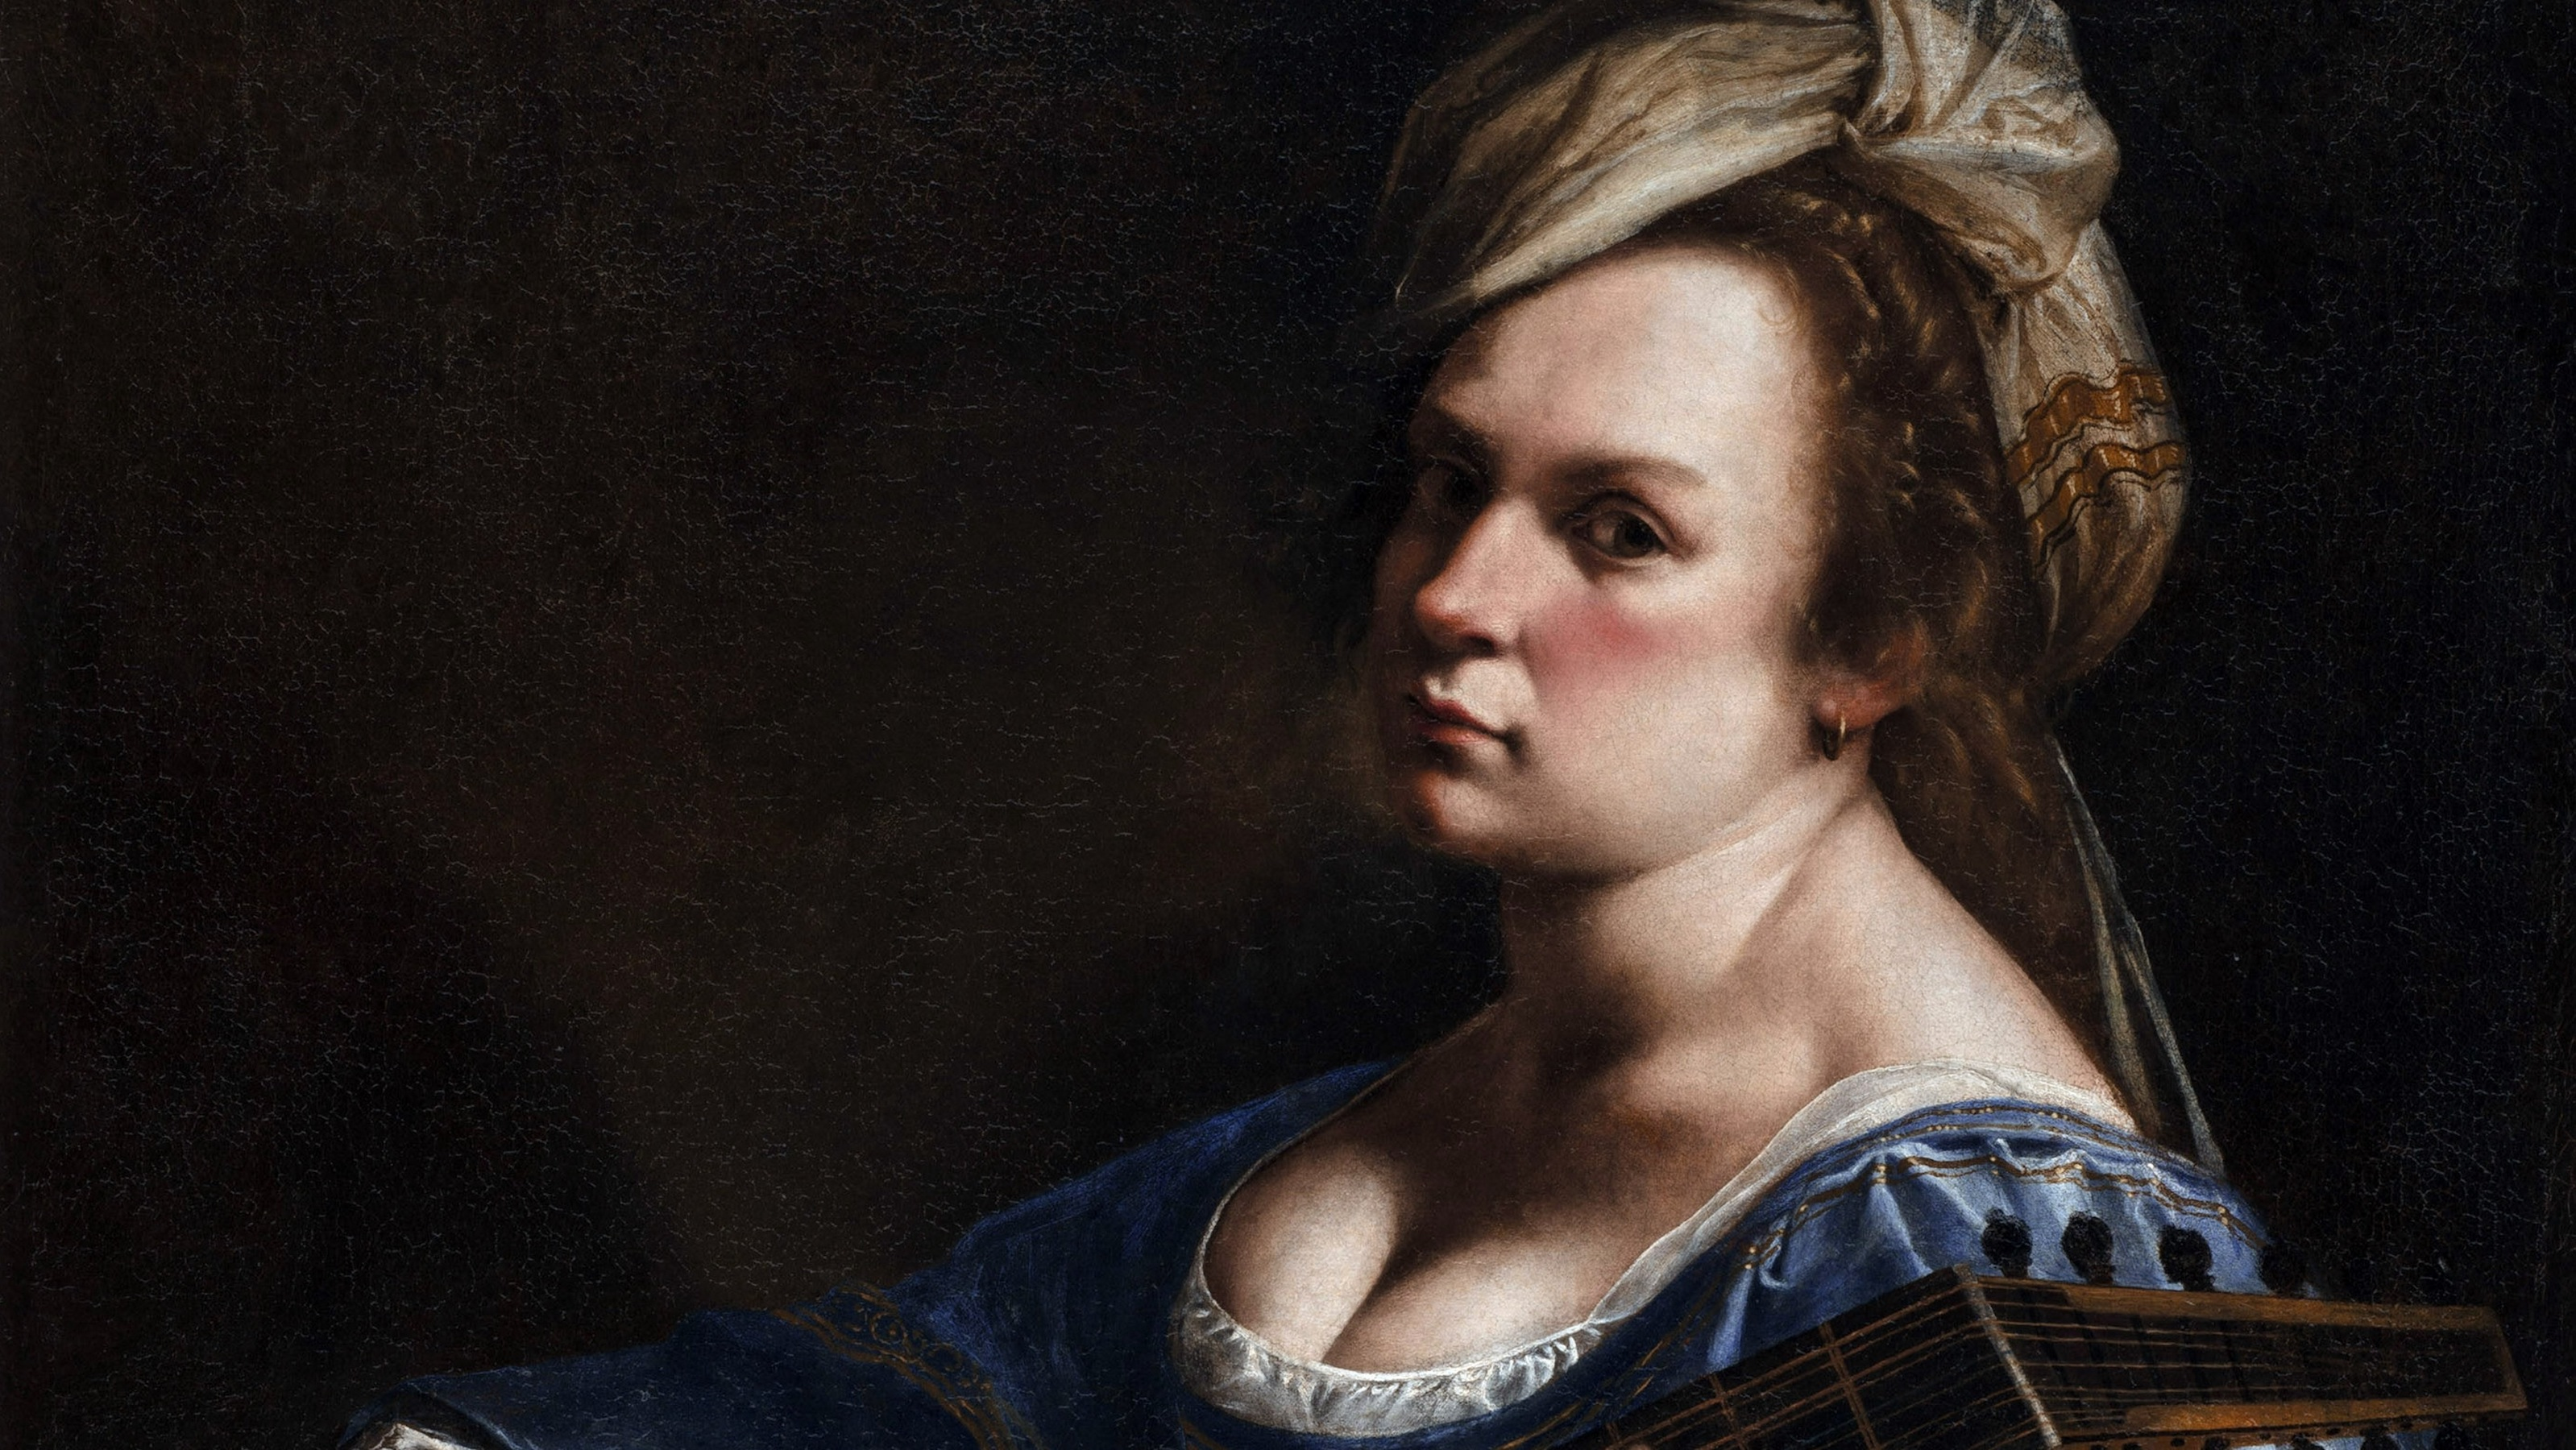 400 years ago, an Italian artist risked everything to publicly accuse her rapist